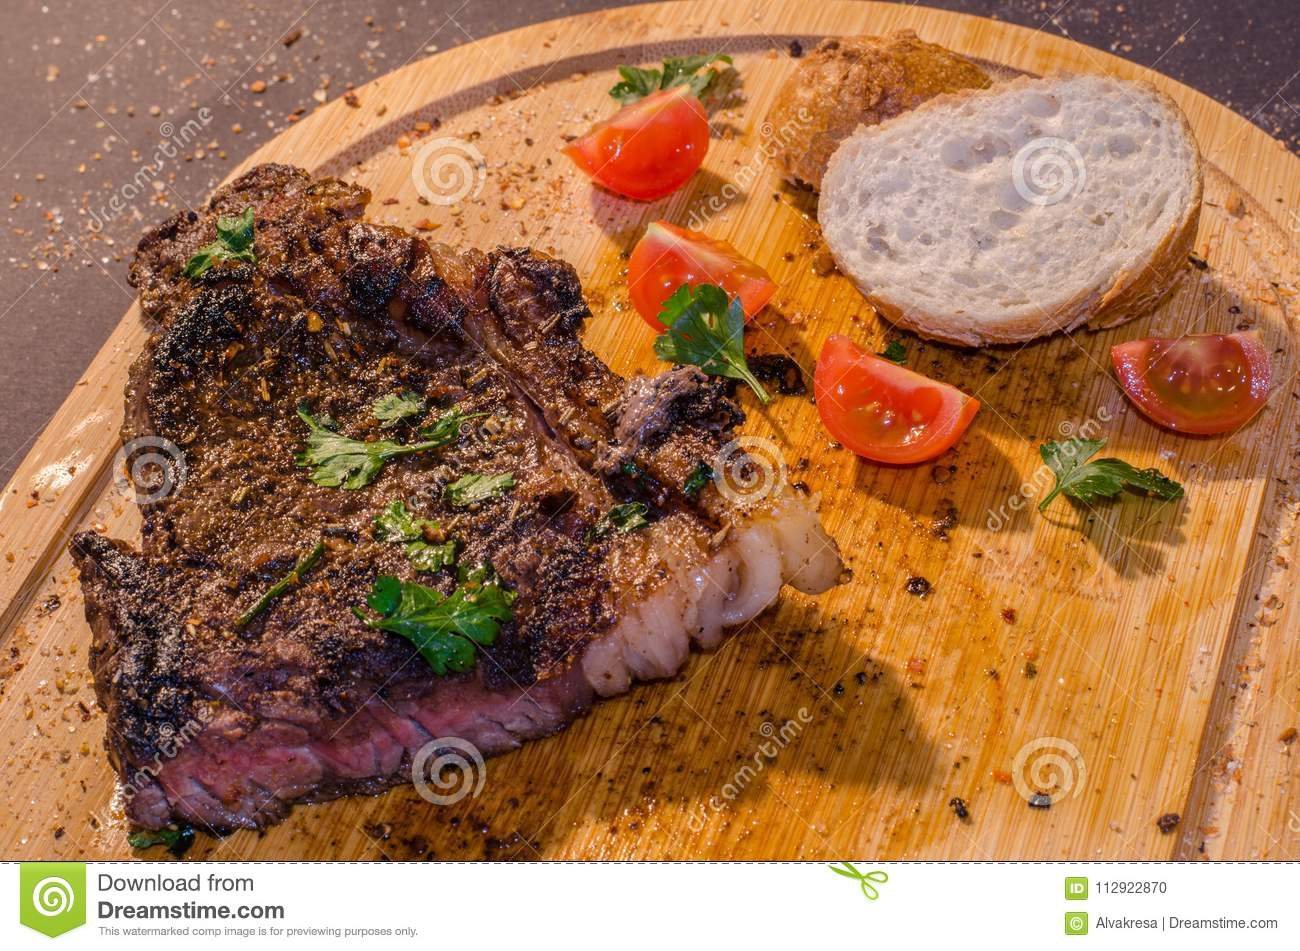 Roasted pork steak with french bread and parsley on top